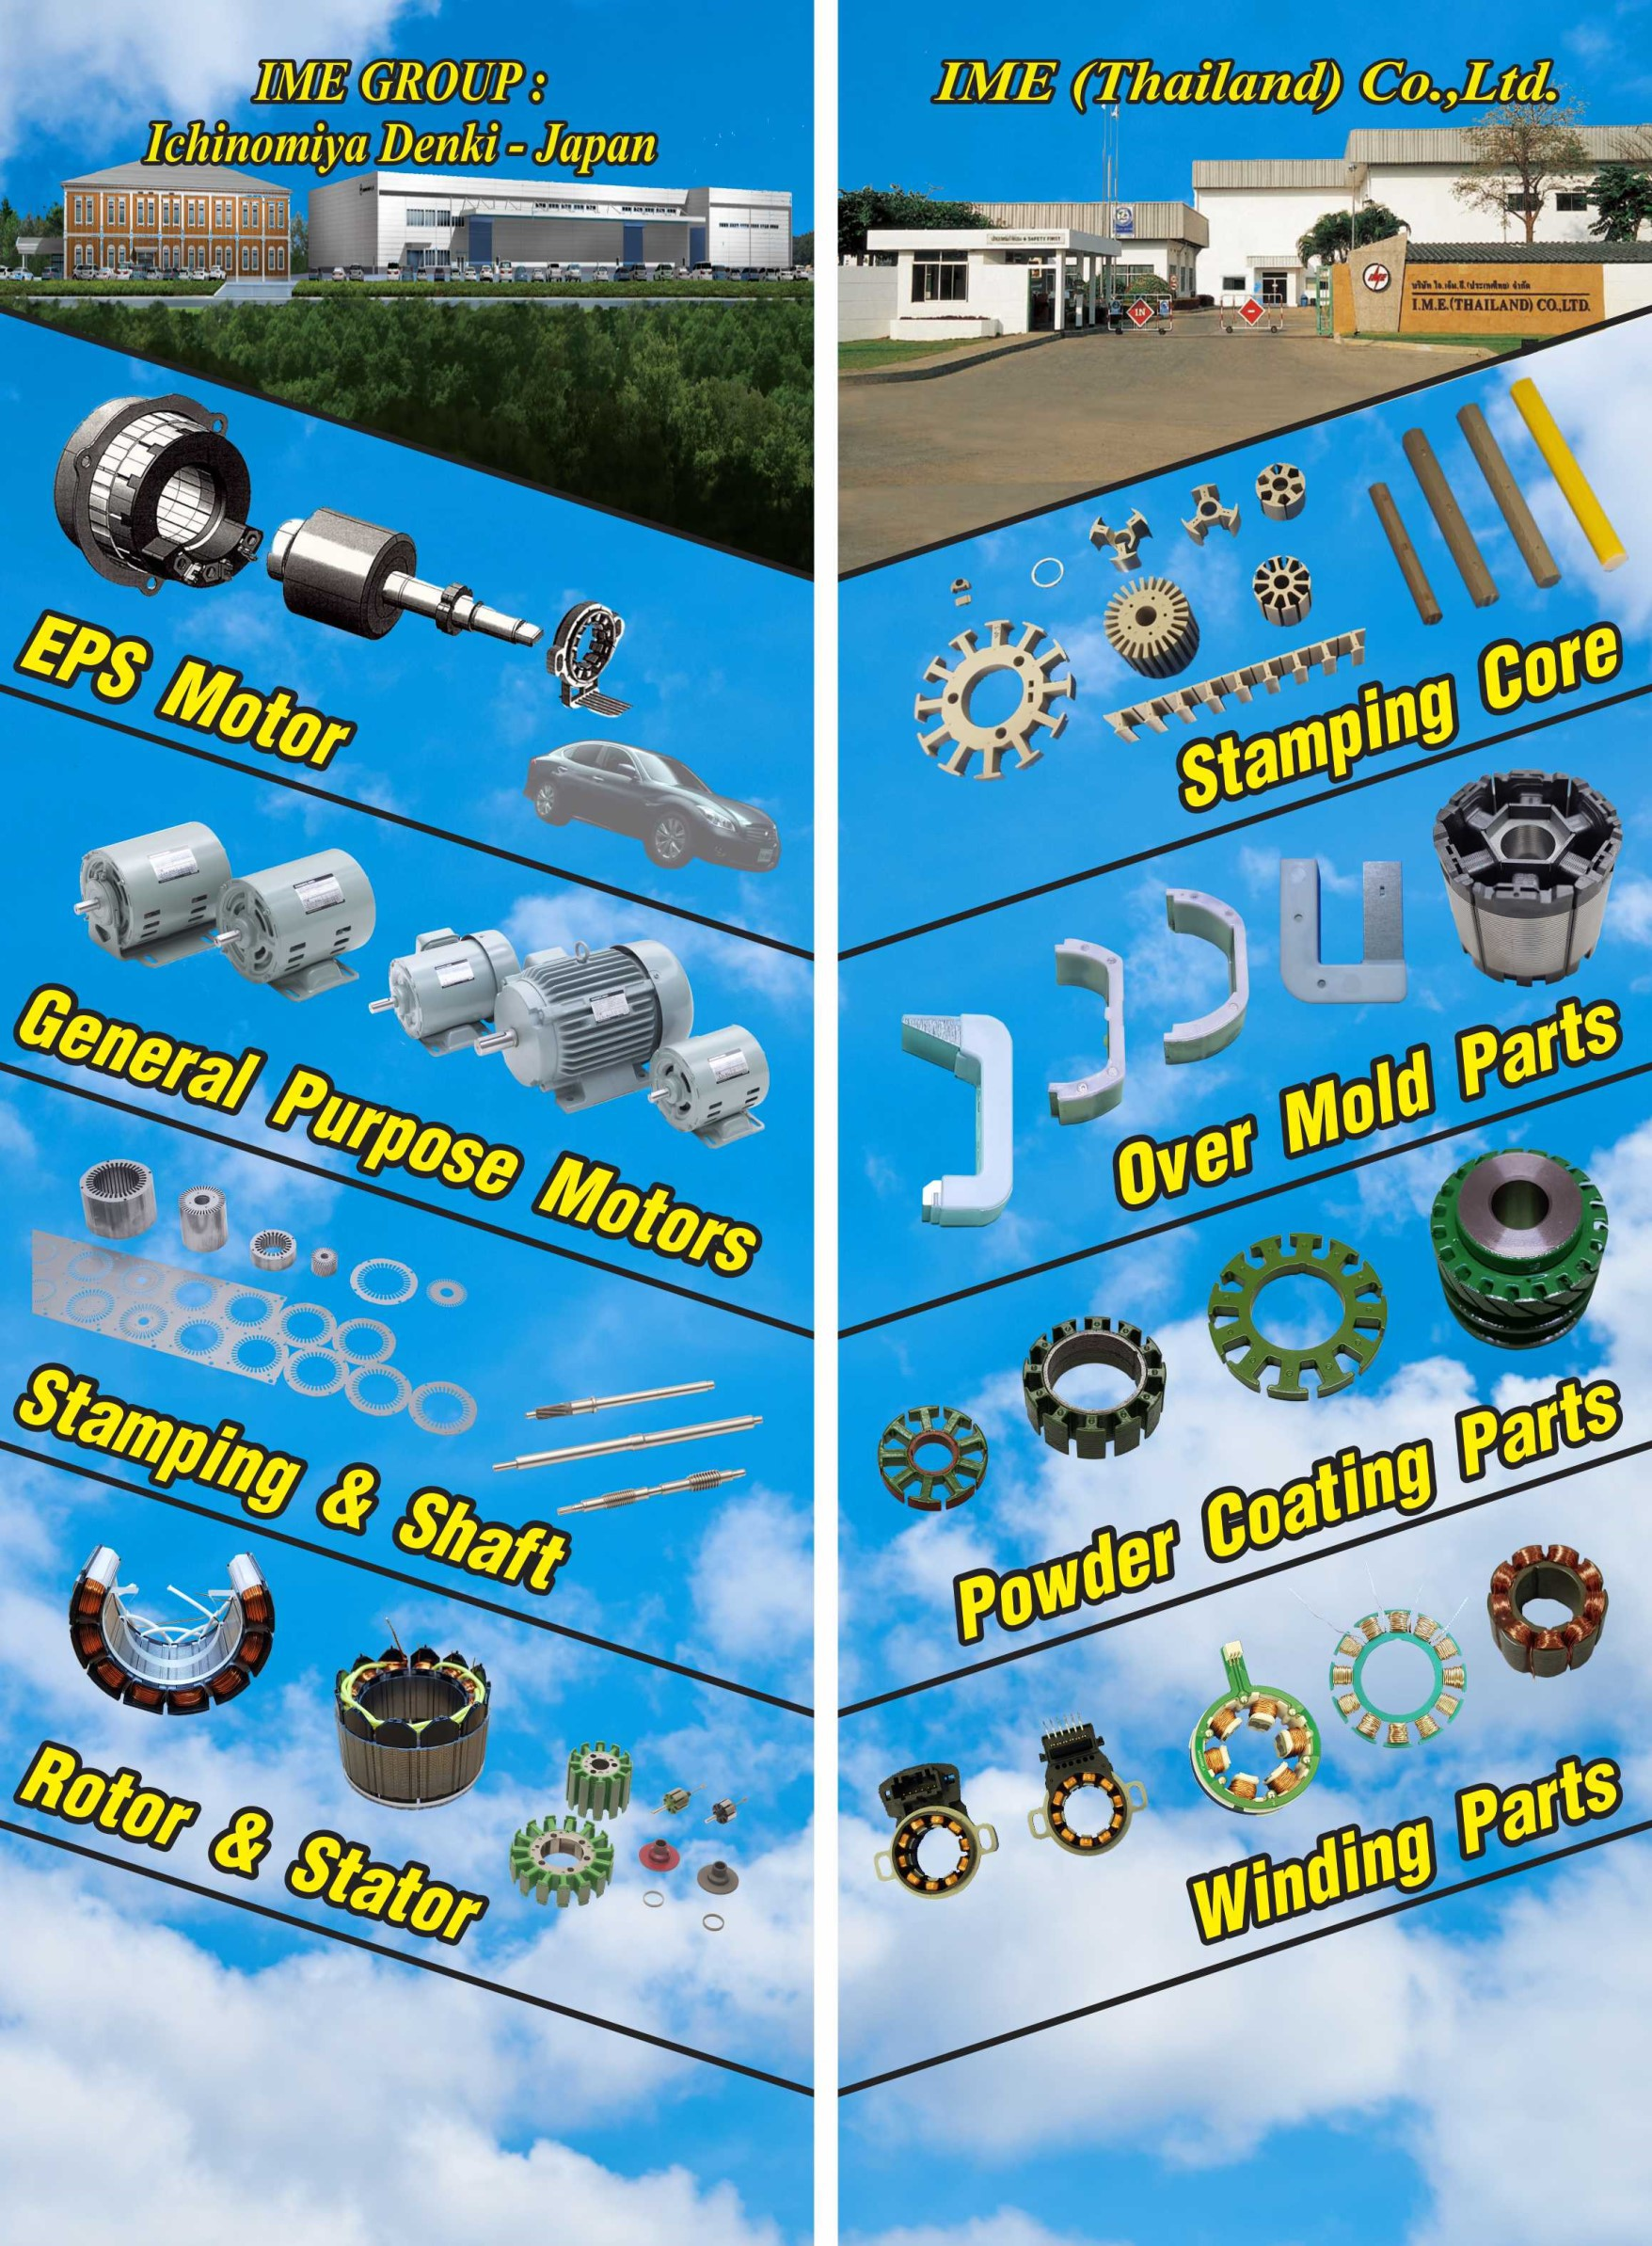 We are Japanese company which is located in Thailand and specialized in Production of Metal Stamping Parts , Coating Parts , Resin Over Mold parts and Winding Parts for Automobile motors as well as other motors